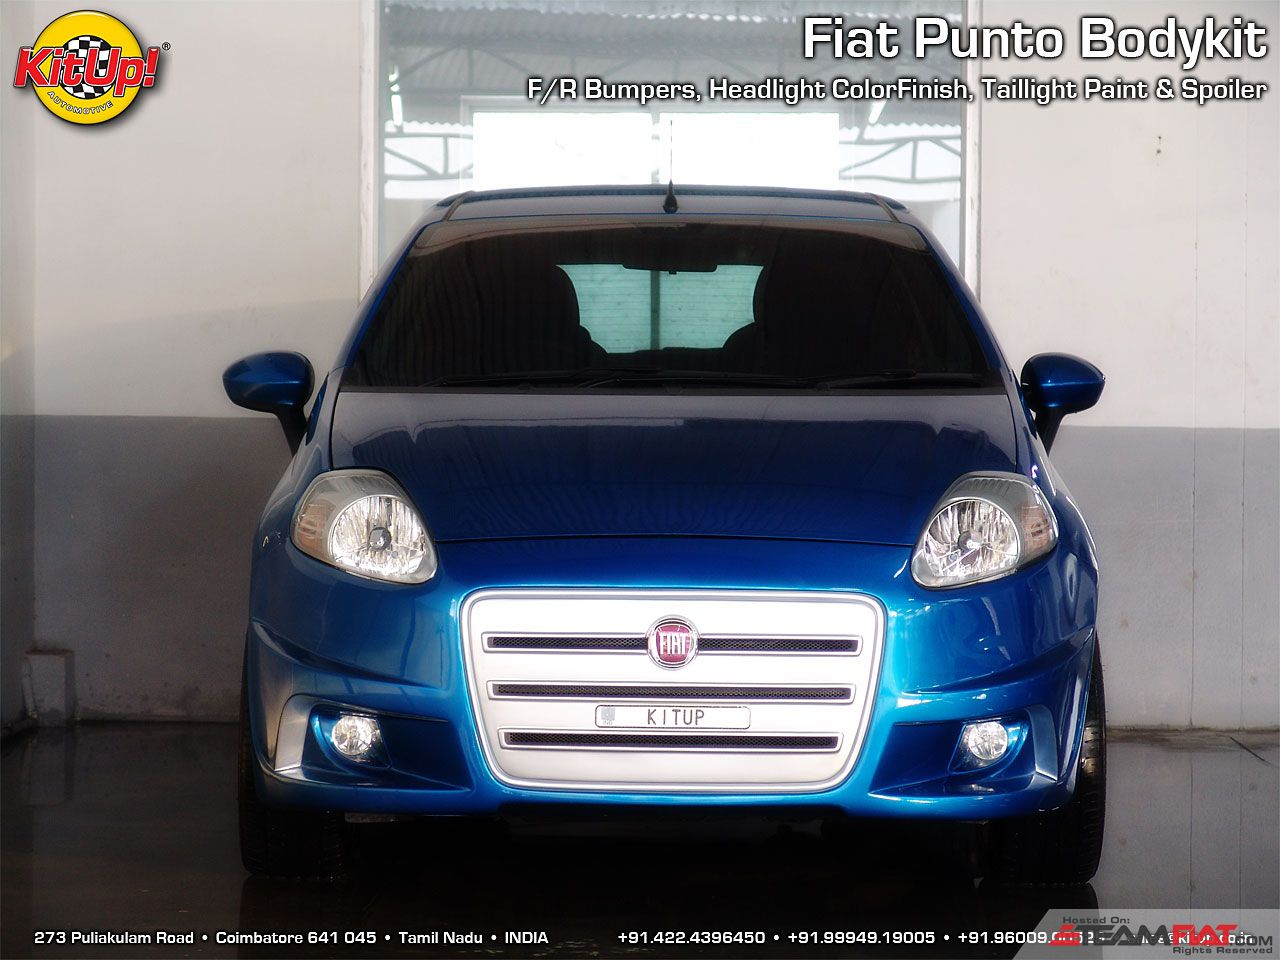 Punto-Bodykit1-4of8.jpg